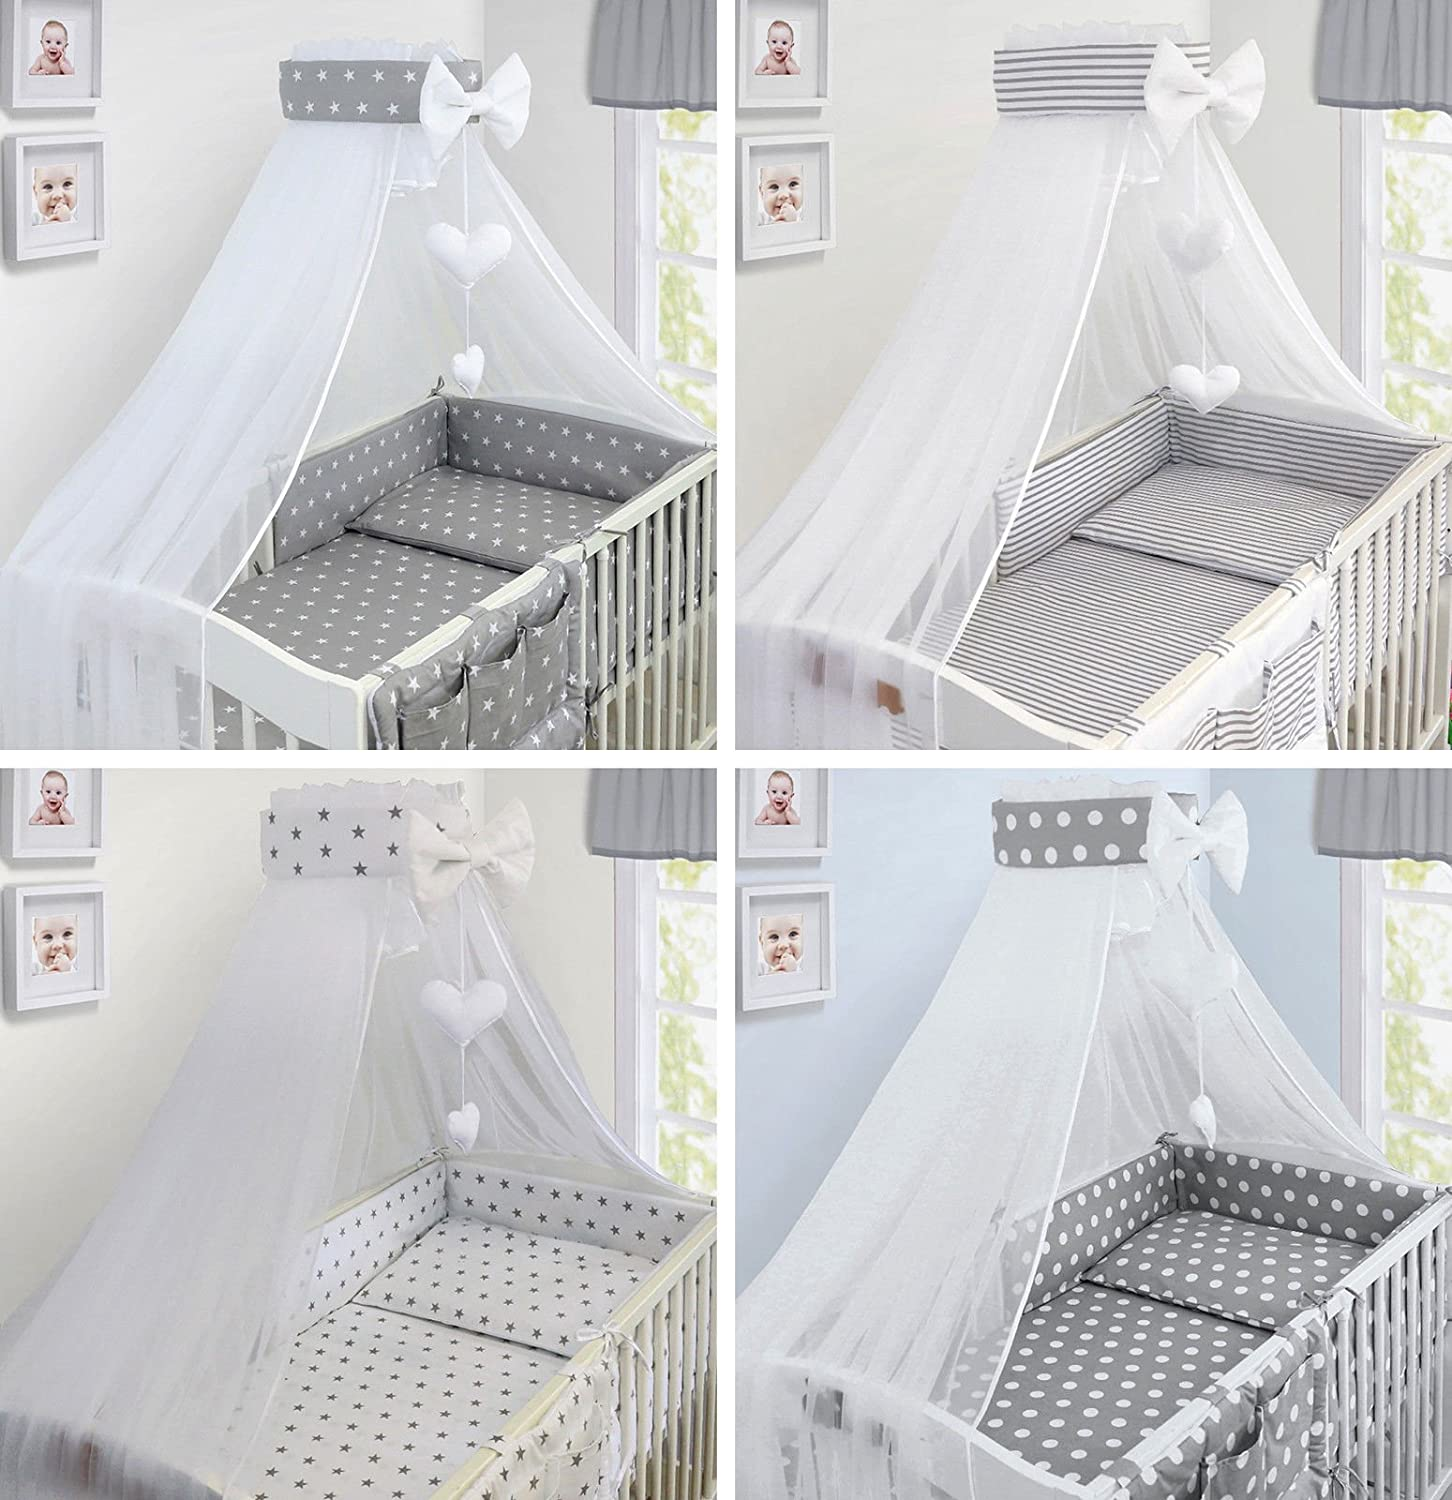 Stars Grey LUXURY 10Pcs BABY BEDDING SET COT BED PILLOW DUVET COVER BUMPER CANOPY to Fit Cot Bed Size 140x70cm 100/% COTTON